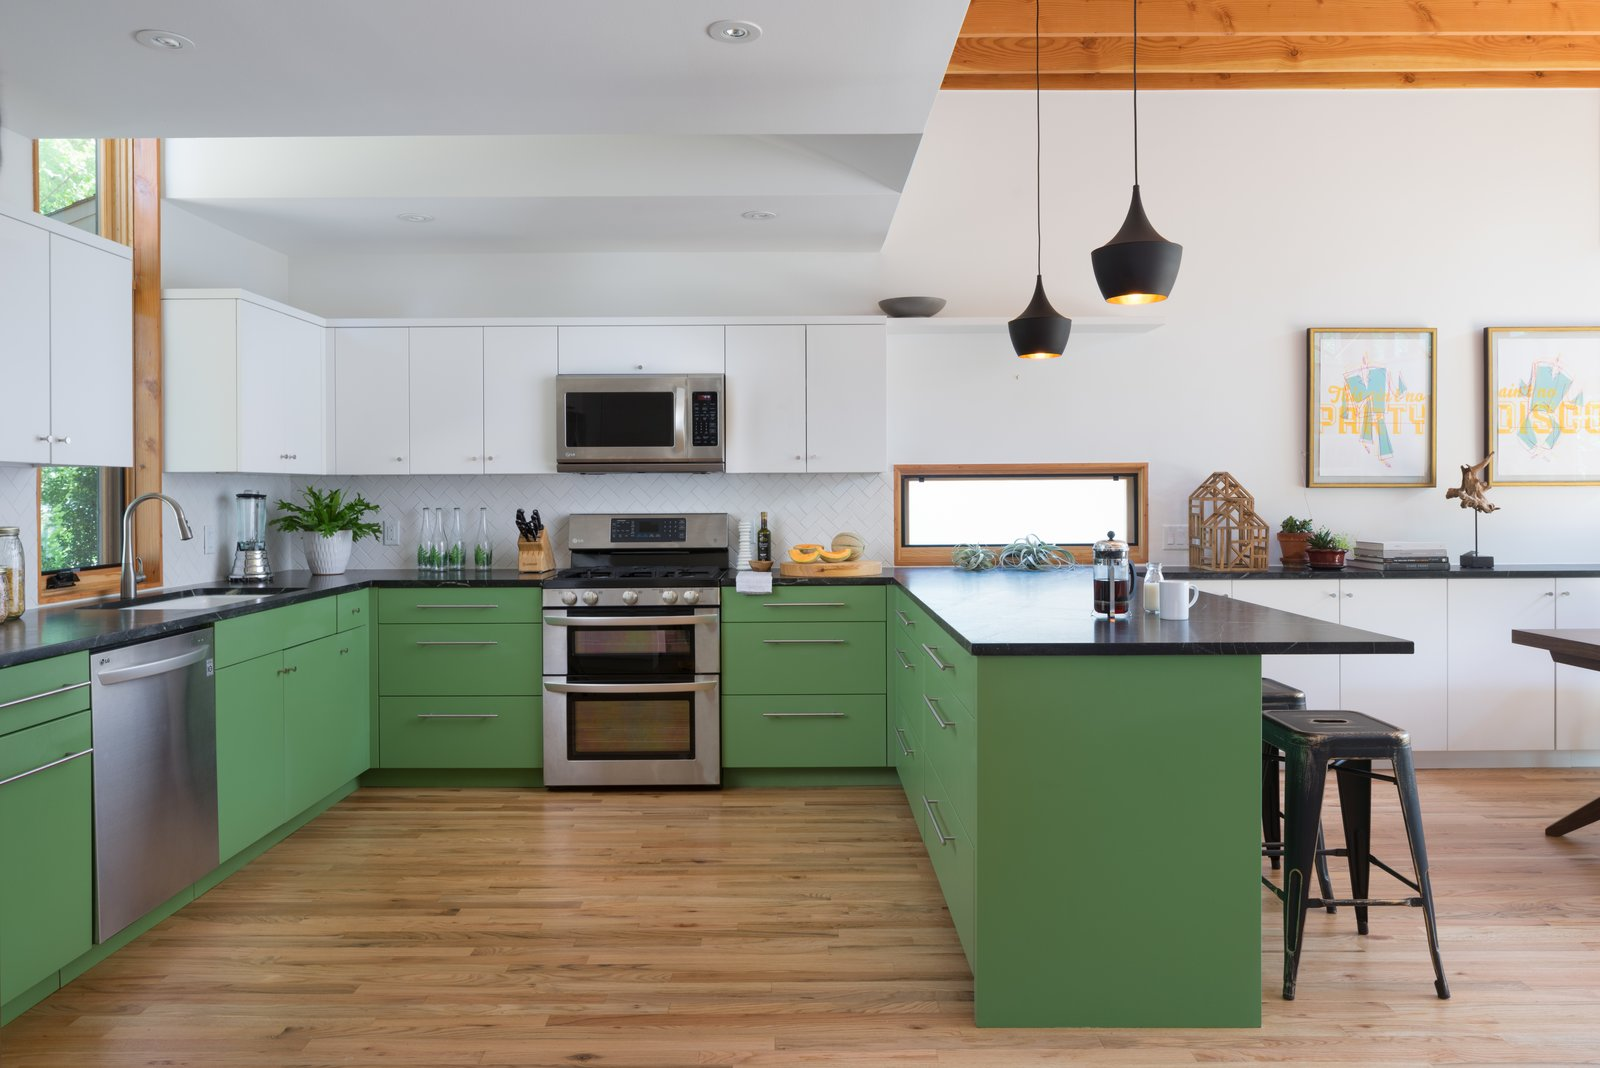 Kitchen, Subway Tile, Colorful, Accent, Medium Hardwood, Pendant, Microwave, Dishwasher, Range, and Undermount  Best Kitchen Range Subway Tile Microwave Photos from Bringing Light Into a Modest 1940s Bungalow in Austin